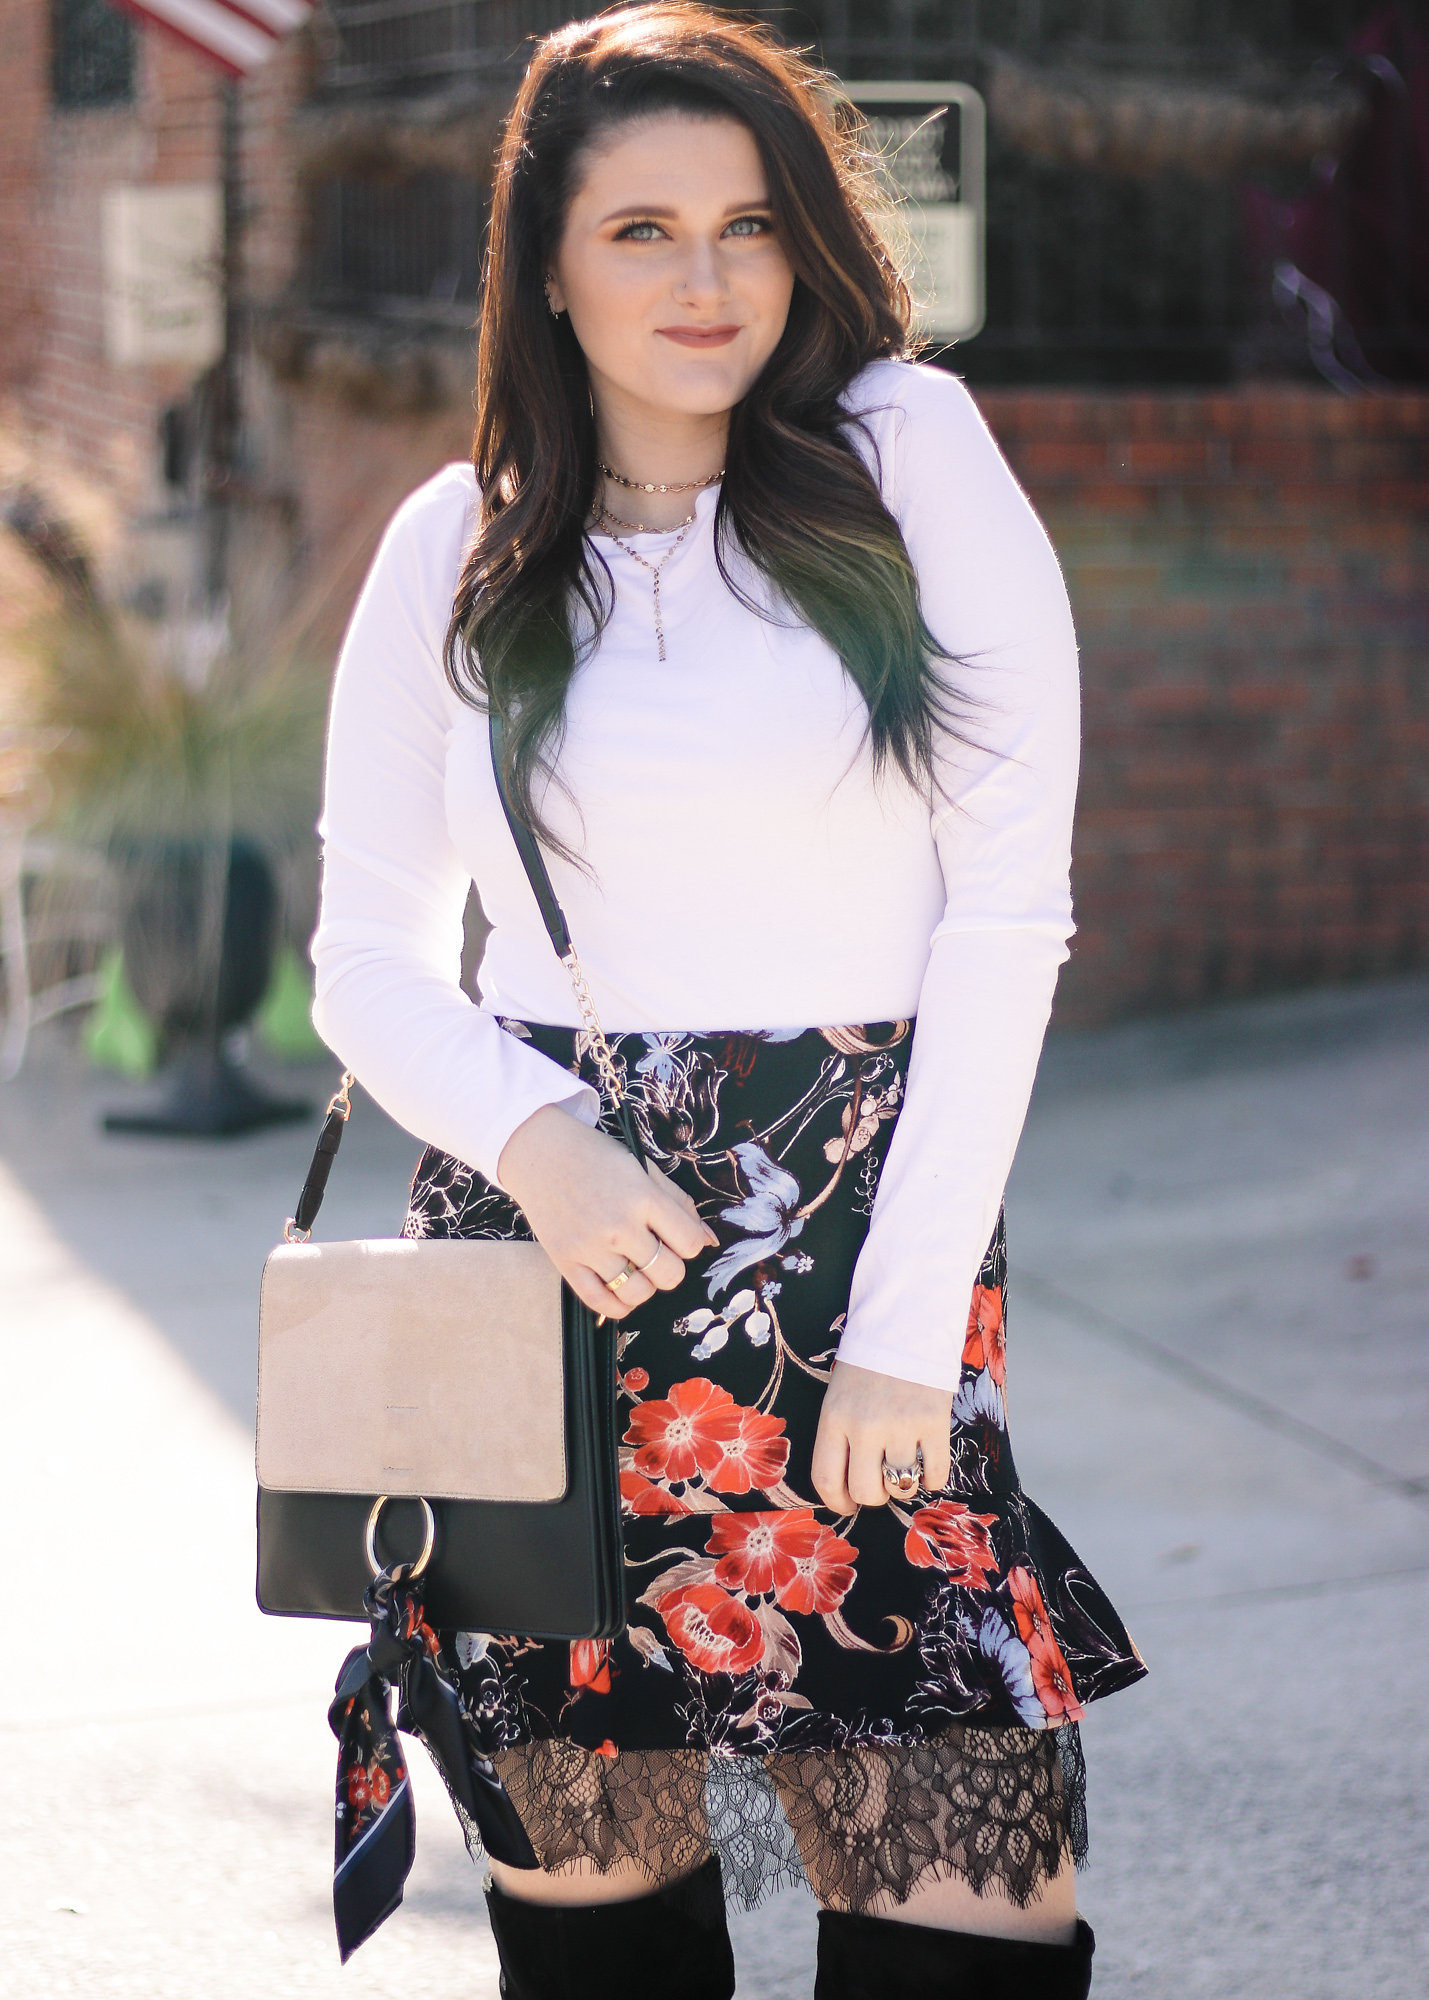 The Perfect Floral Skirt for Work